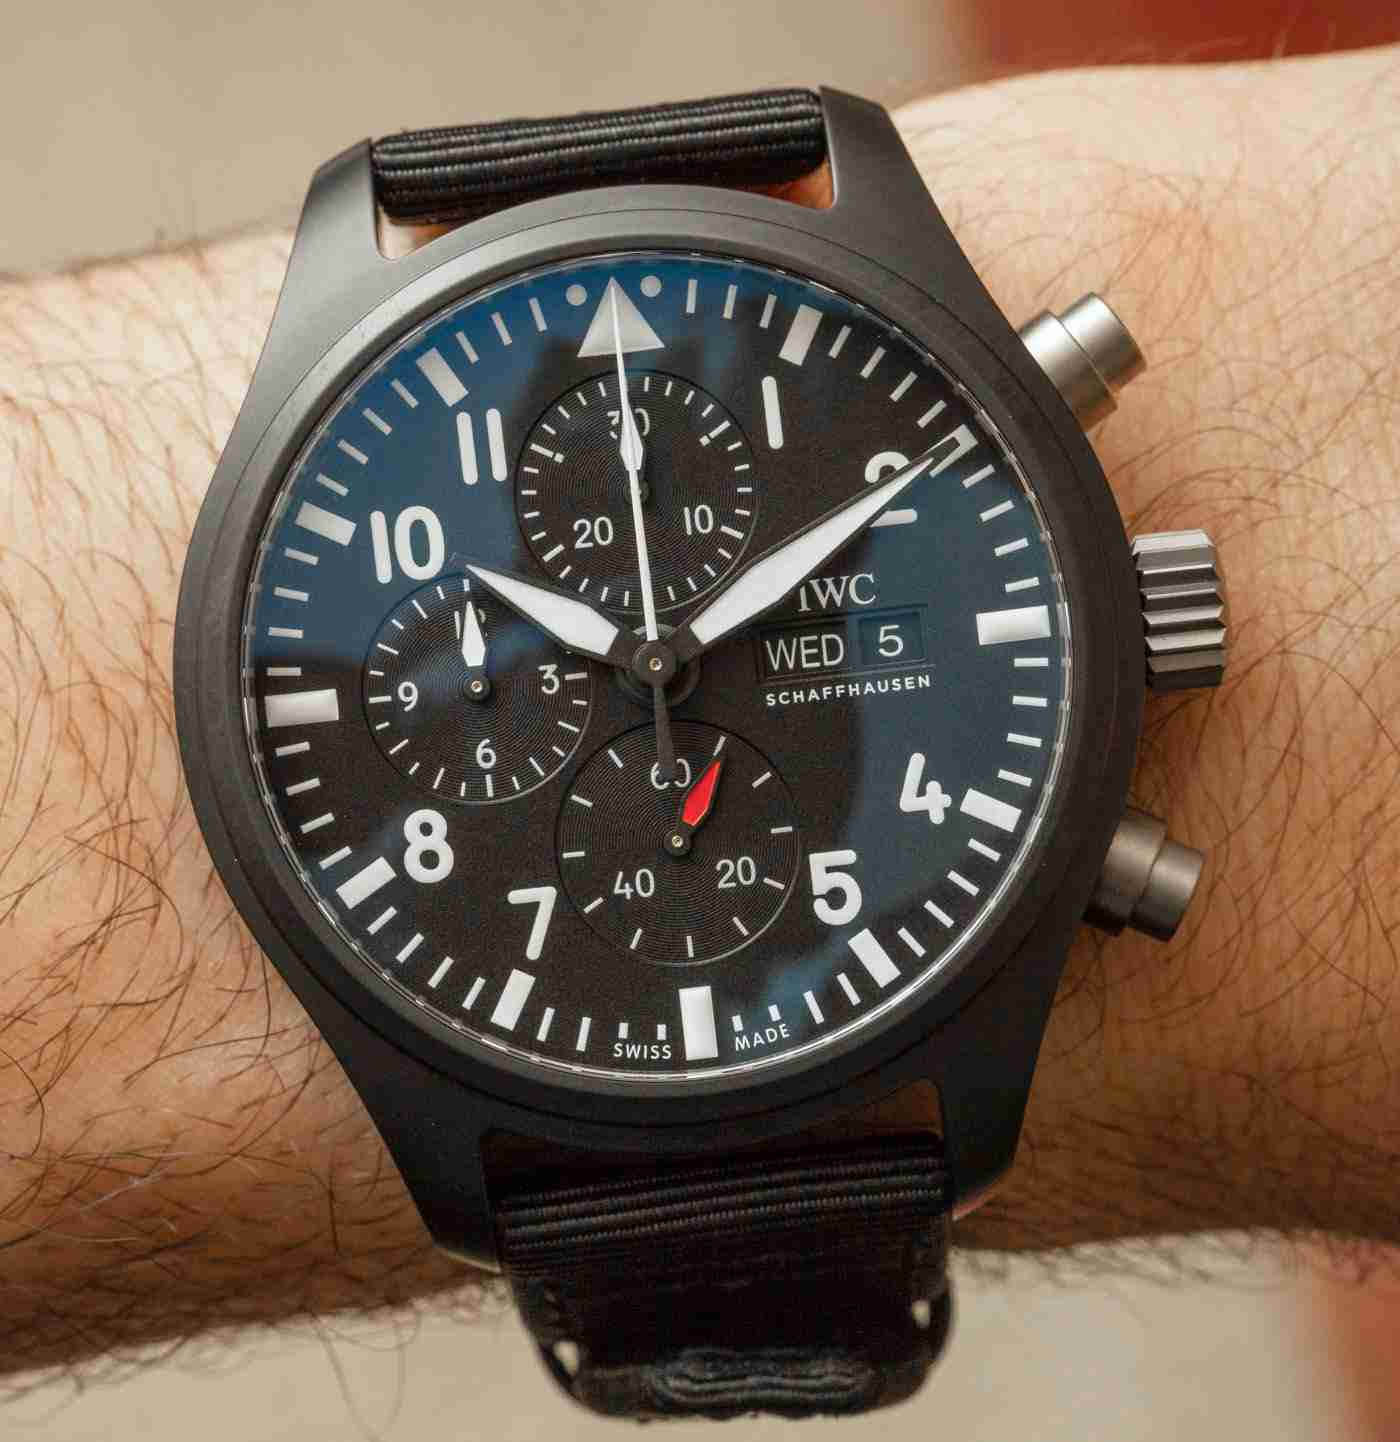 The IWC Pilot's Watch Chronograph TOP GUN Matte Black Ceramic Replica Hands On